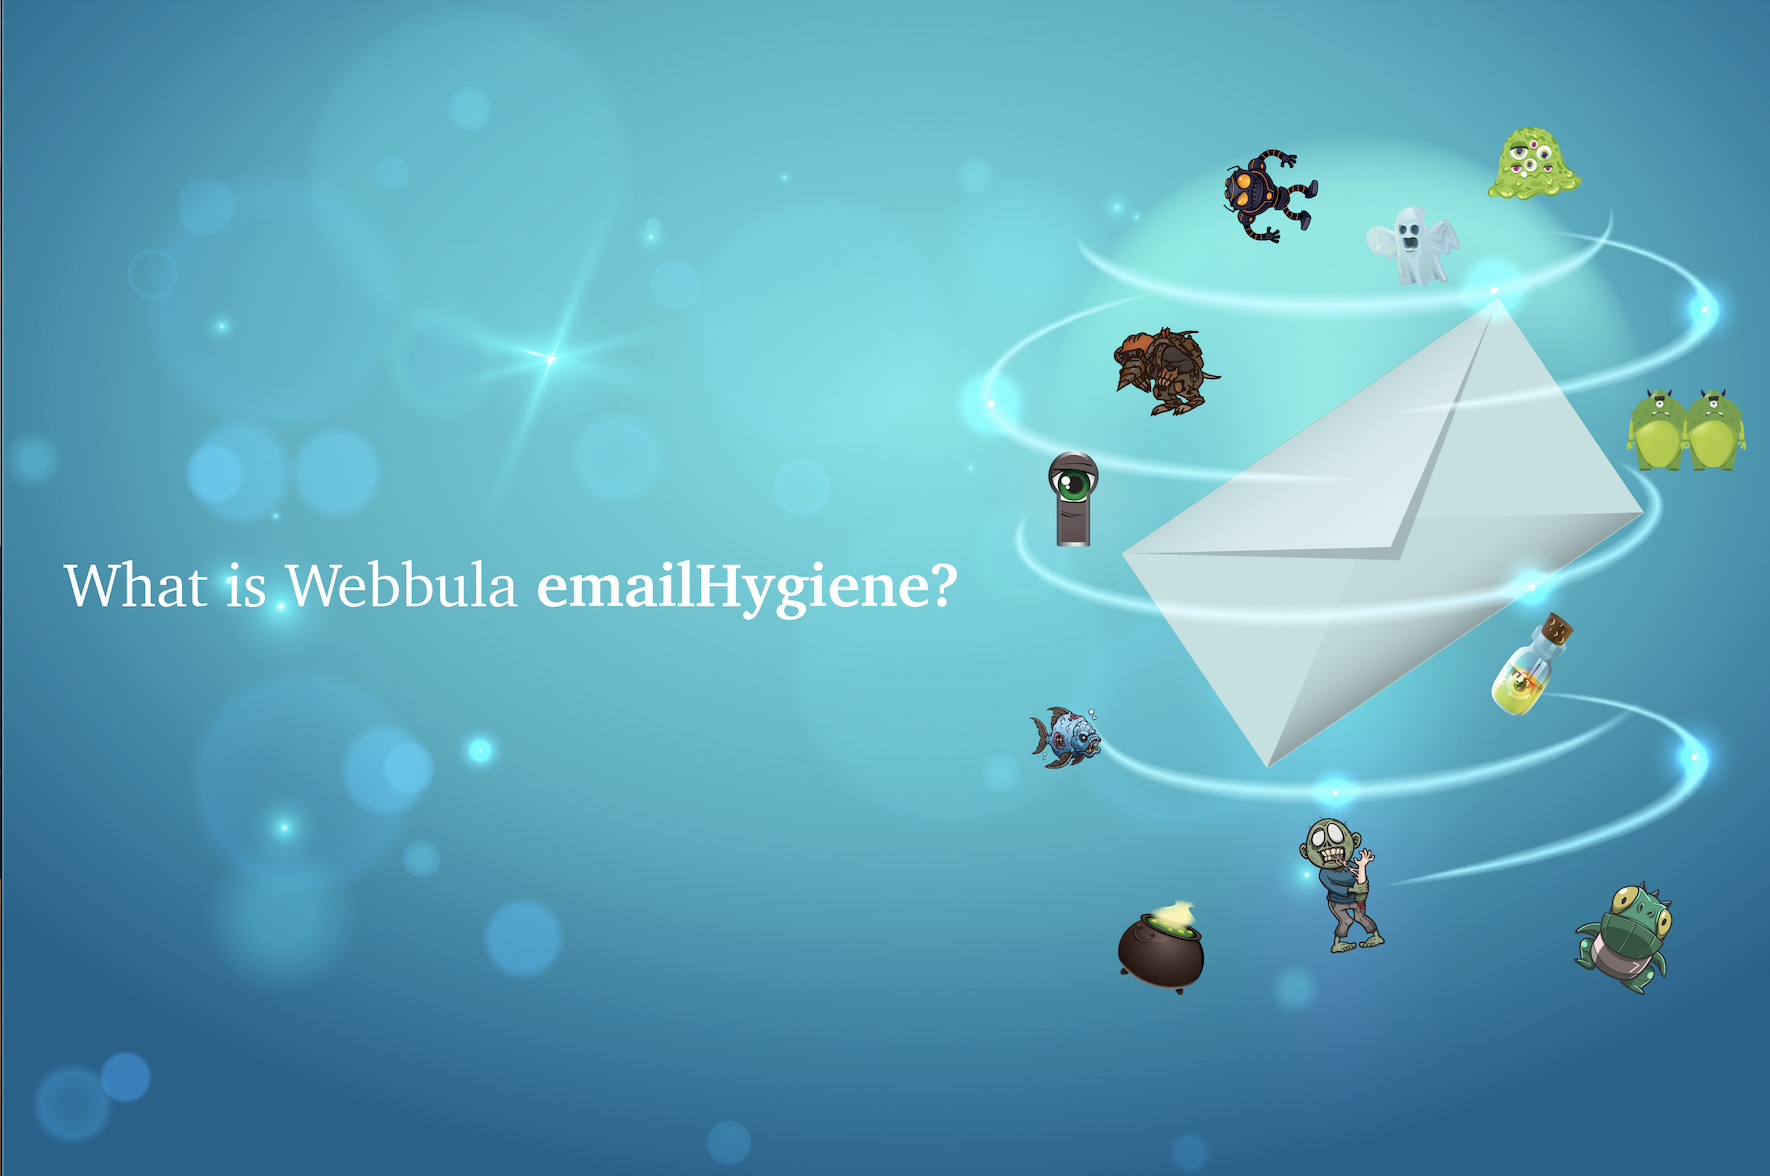 Video | What is Webbula emailHygiene?